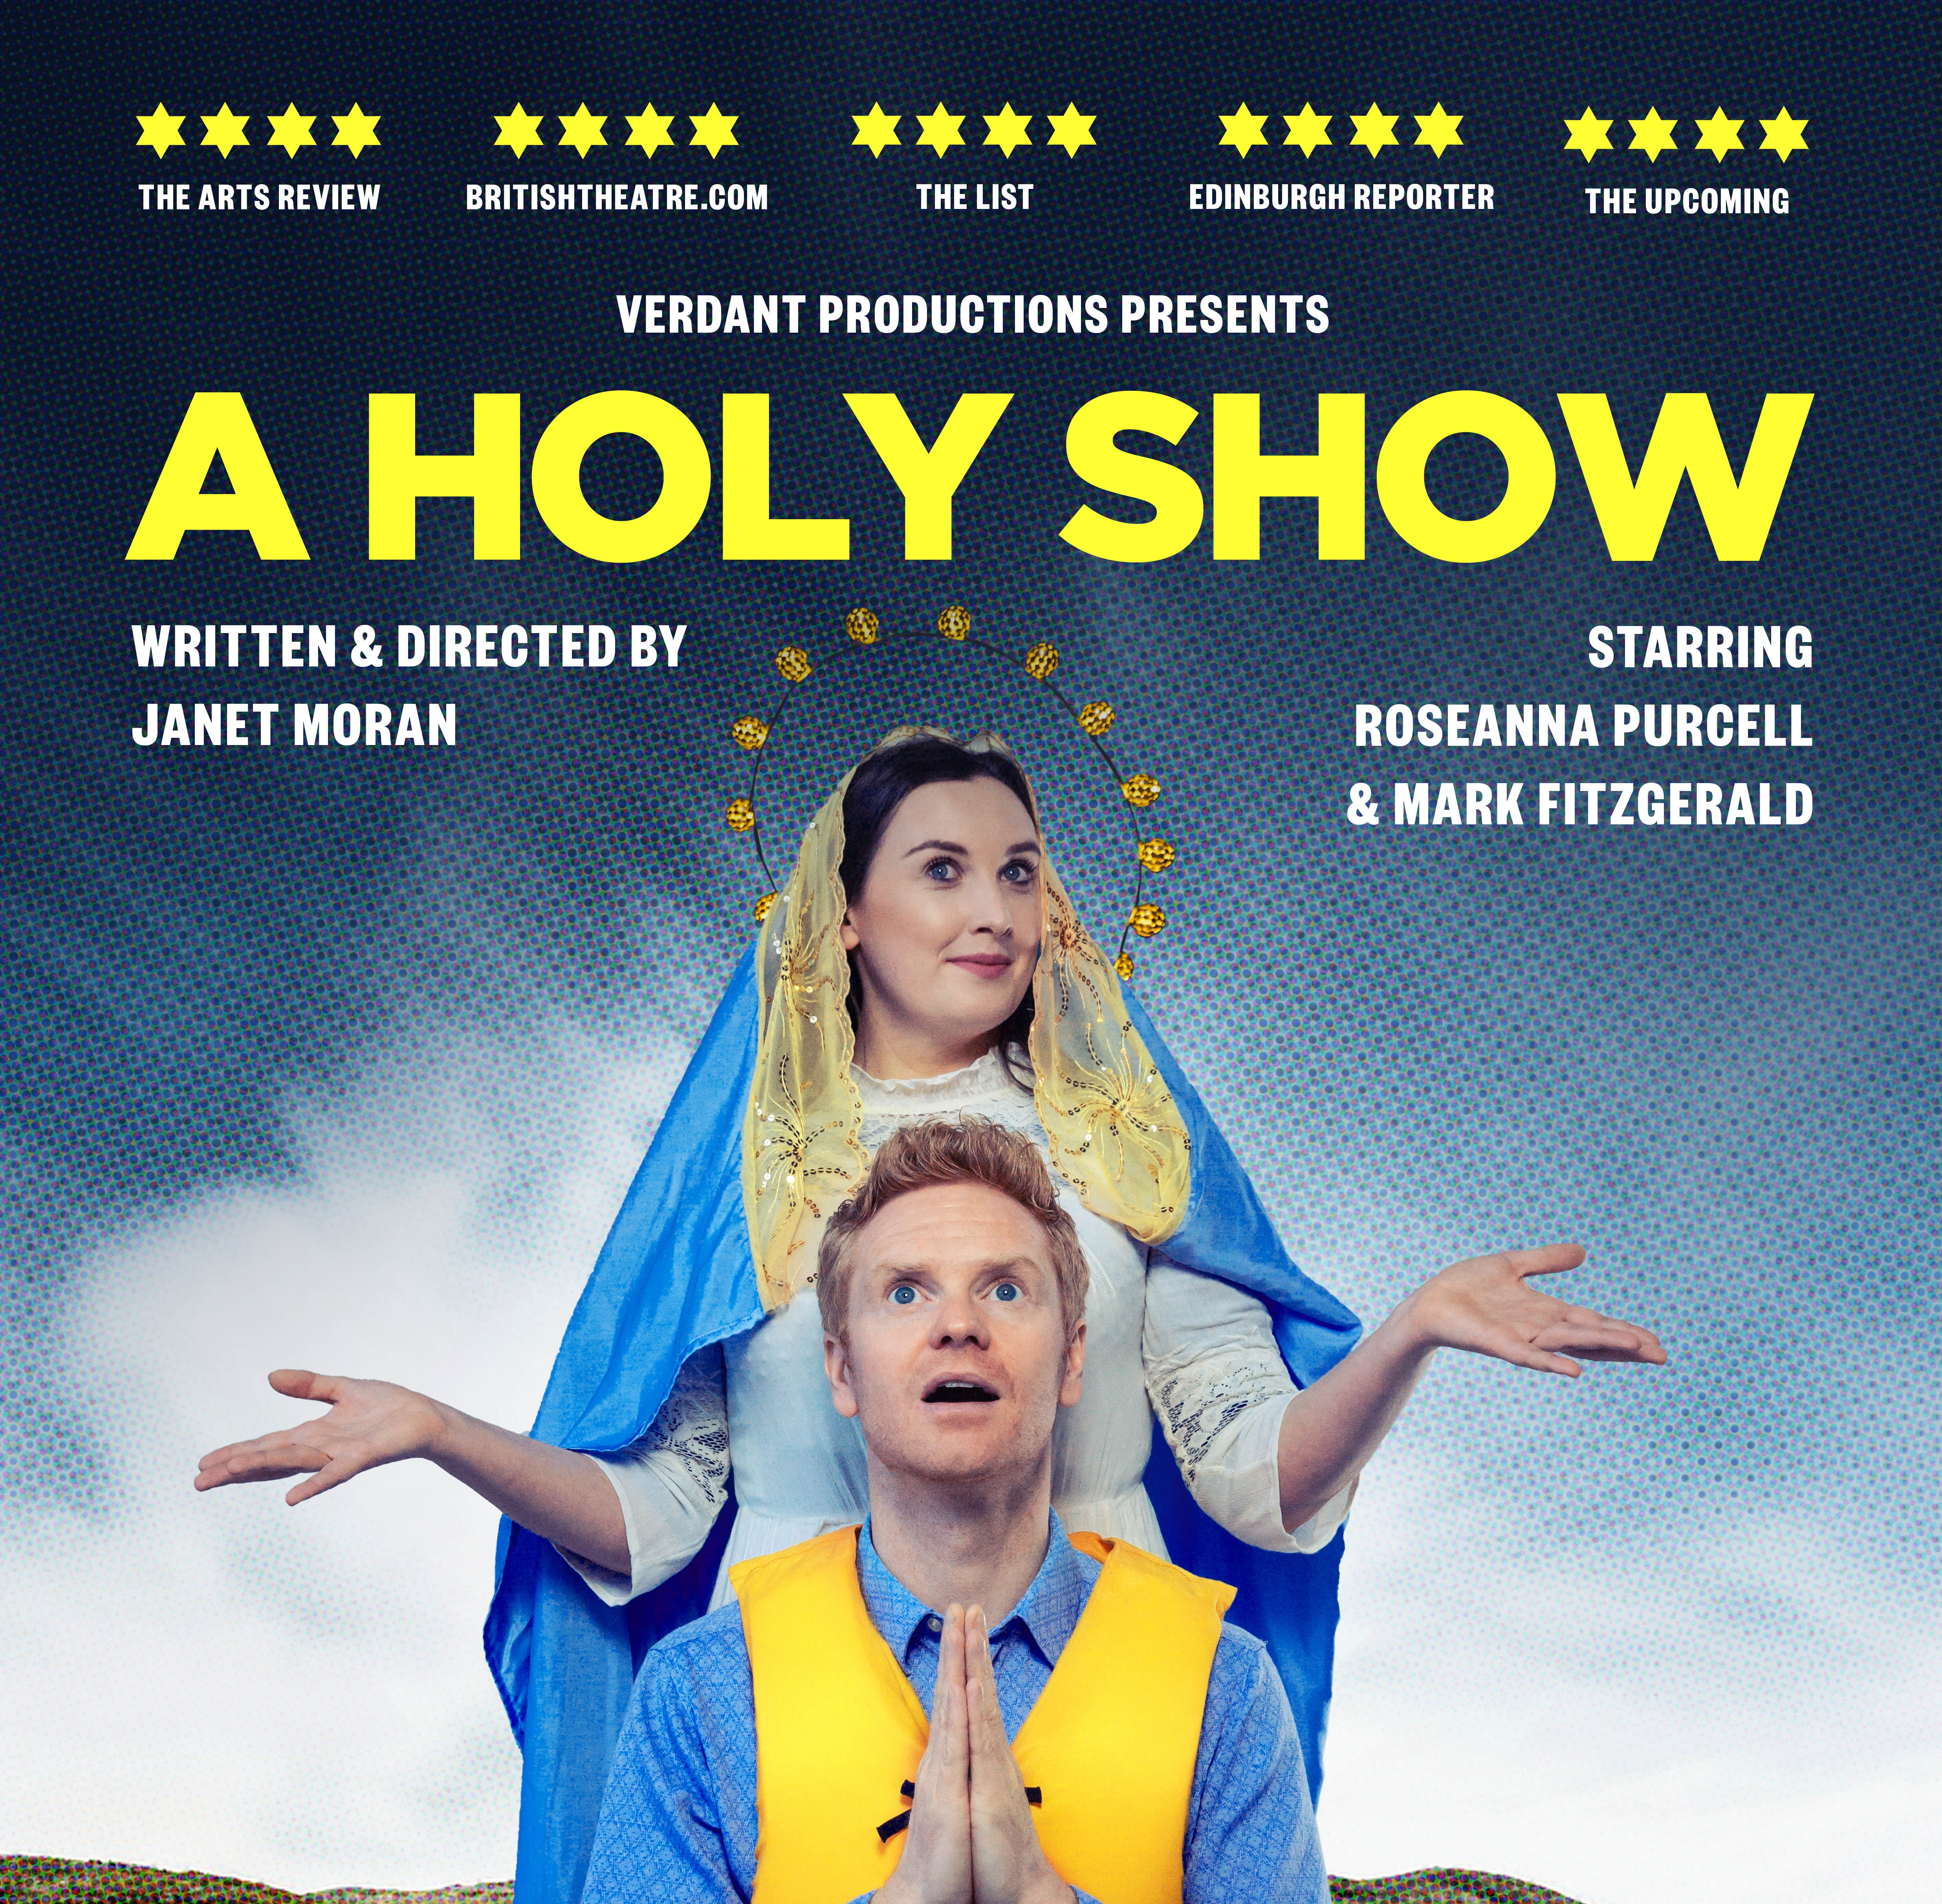 A Holy Show by Janet Moran